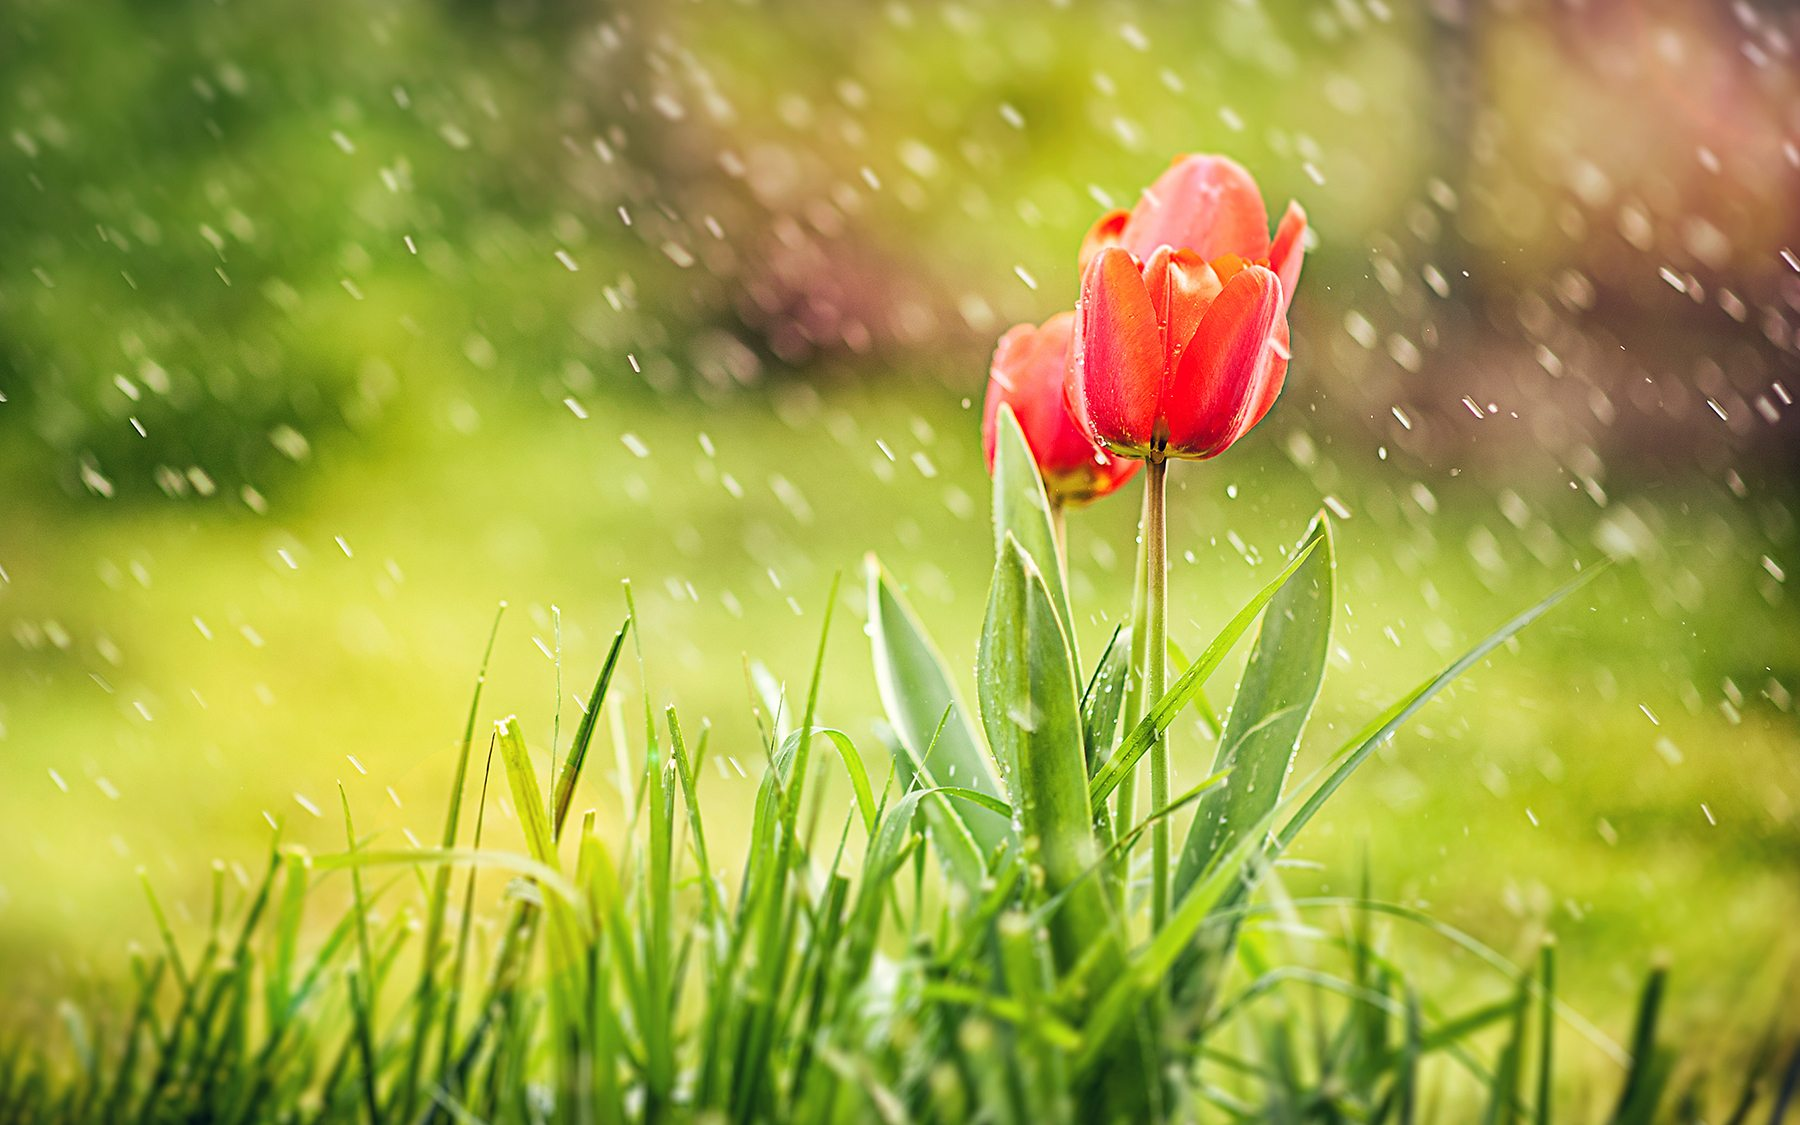 flowers-red-tulip-rain-wallpaper-42927